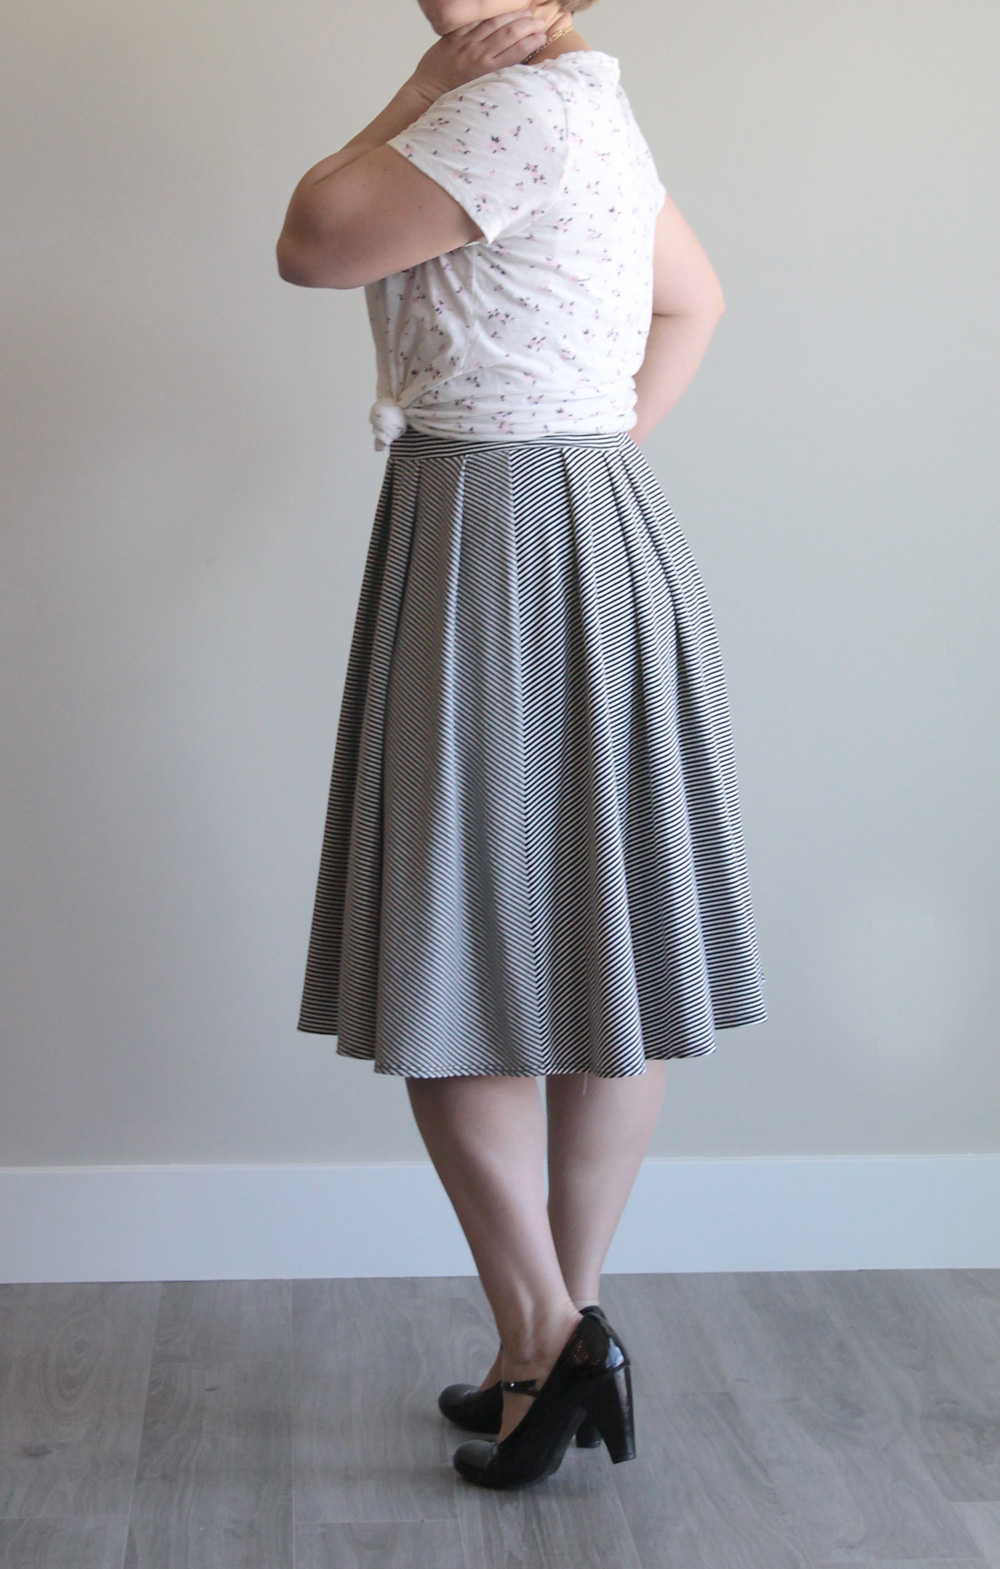 e9af3537e3 Easy pleated midi skirt sewing tutorial. This is made with knit fabric and  an elastic